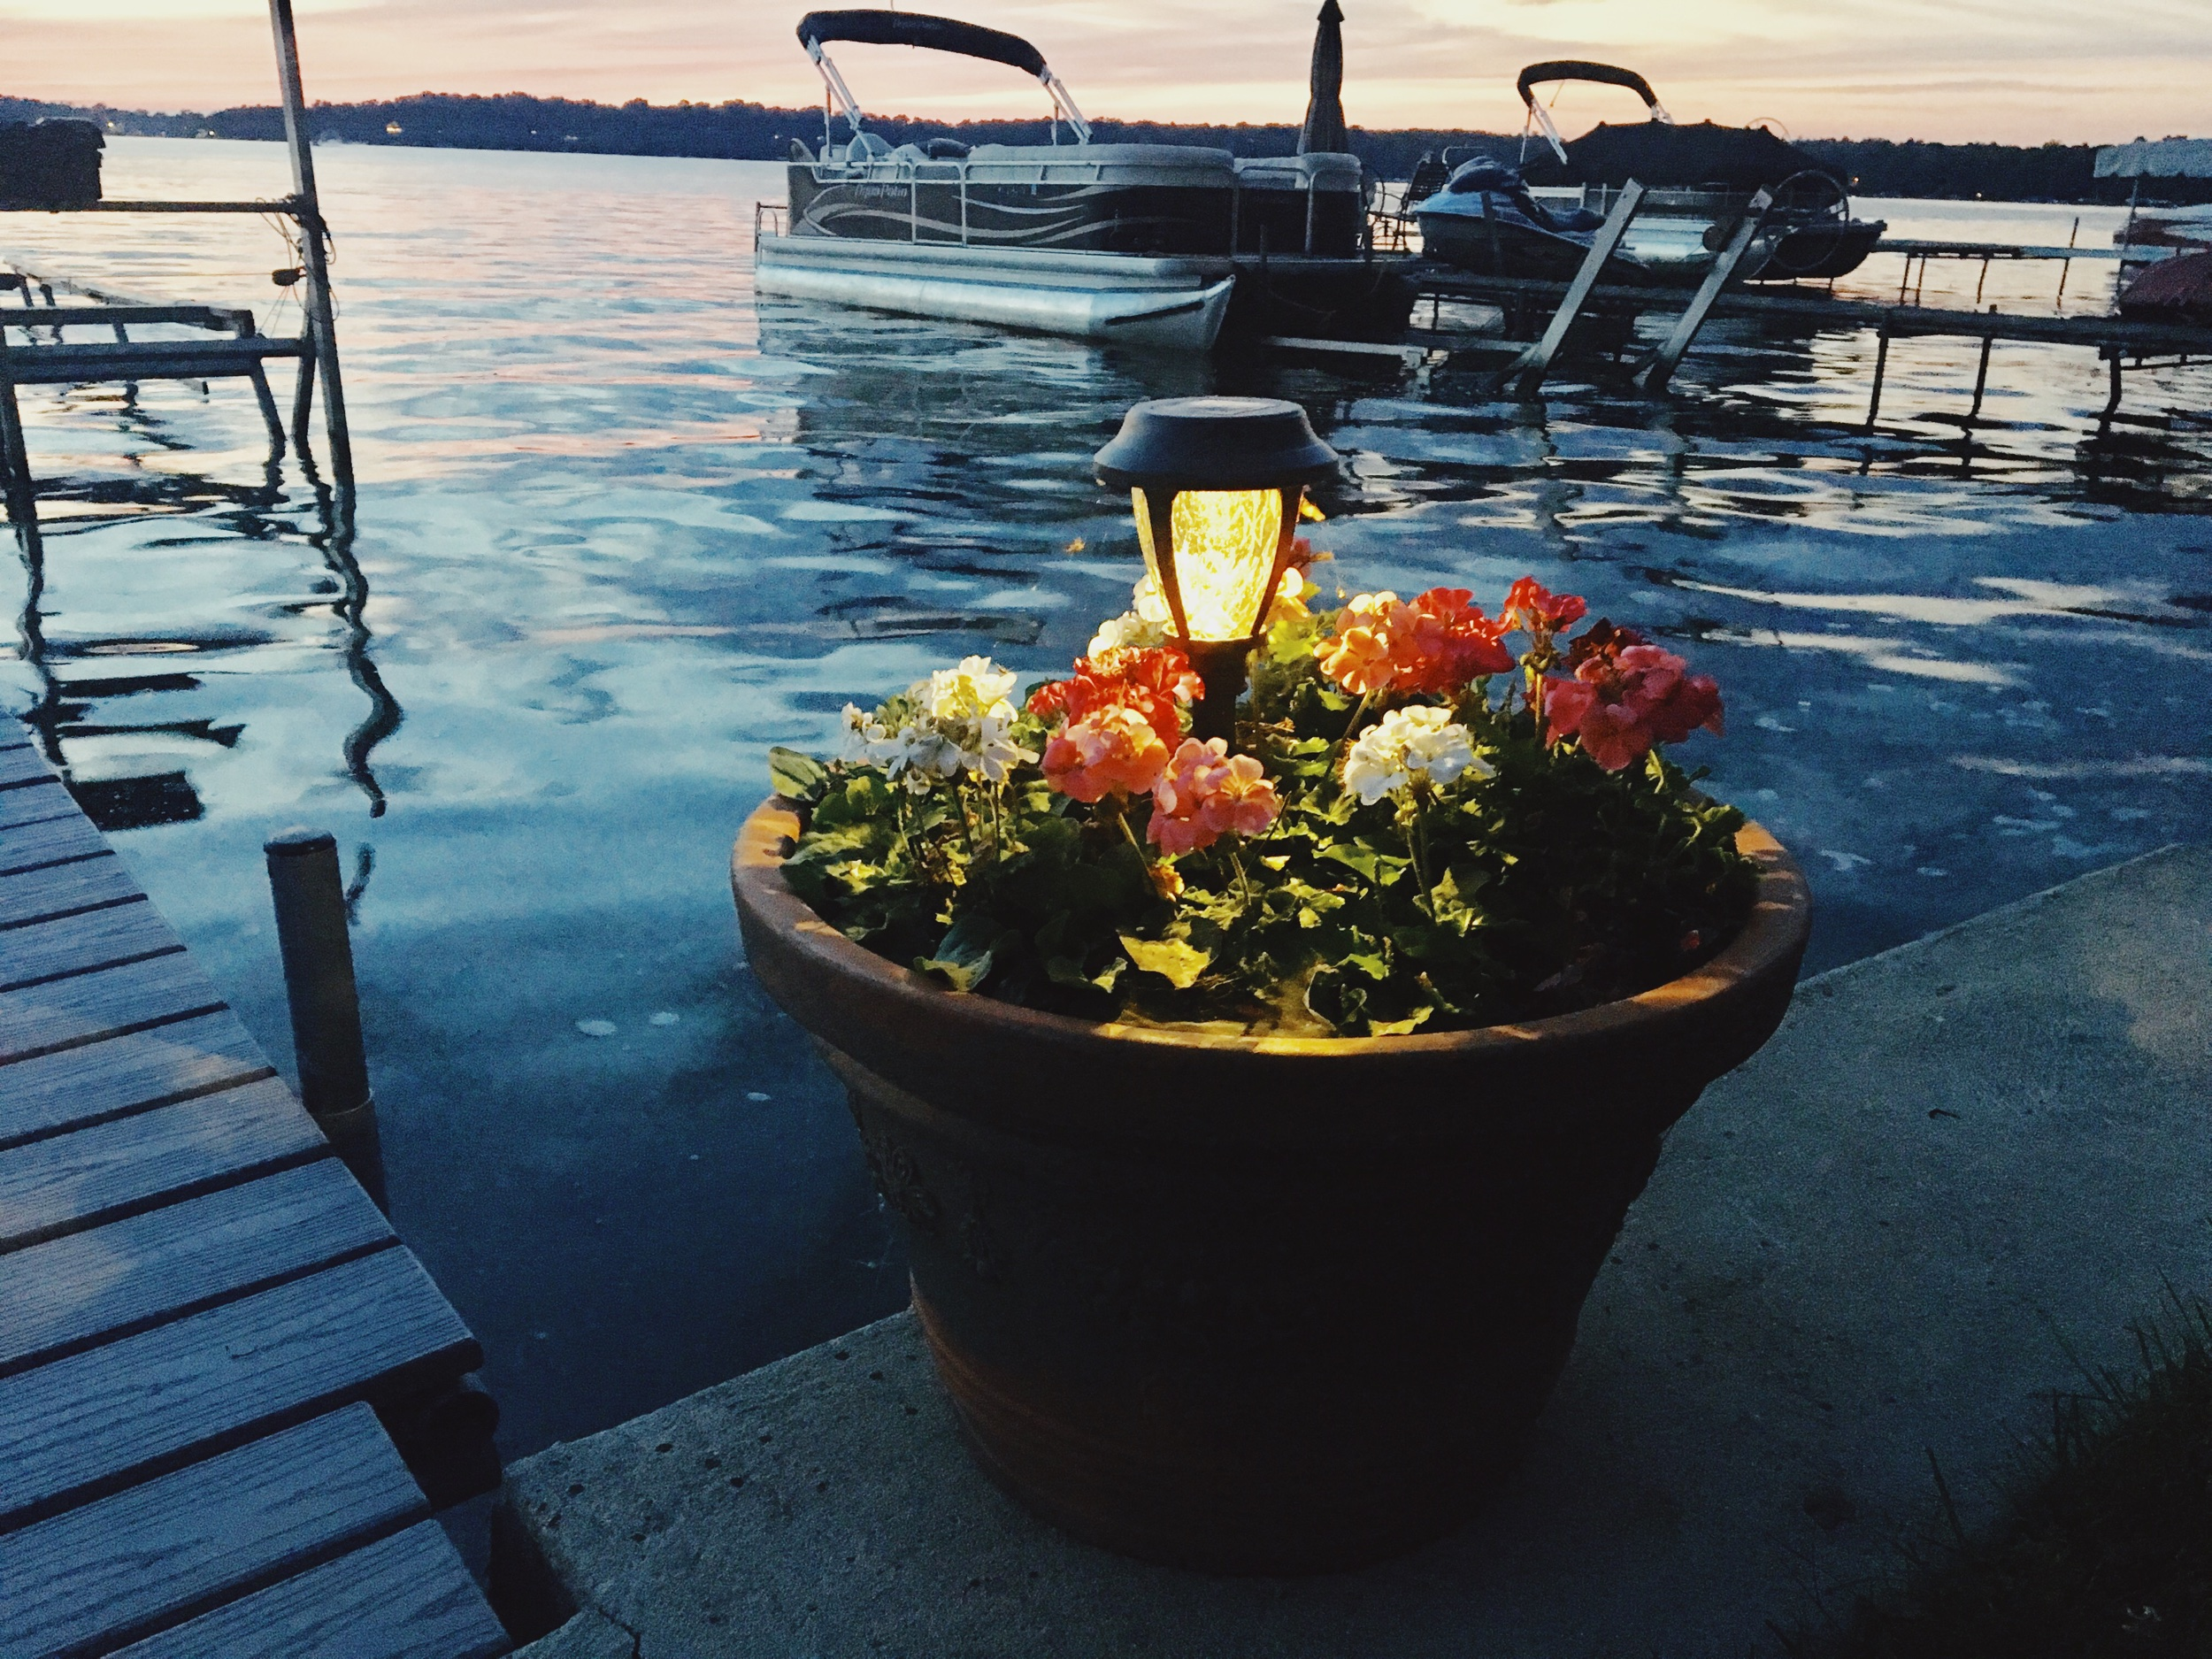 LED Solar Pathway Lights on a dock. Seawall lights. Flower pot LED lights. Dock lights for a lake house. Lake house dock lights. Lit dock at night. Outdoor light ideas for a dock. #Dock #light #ideas